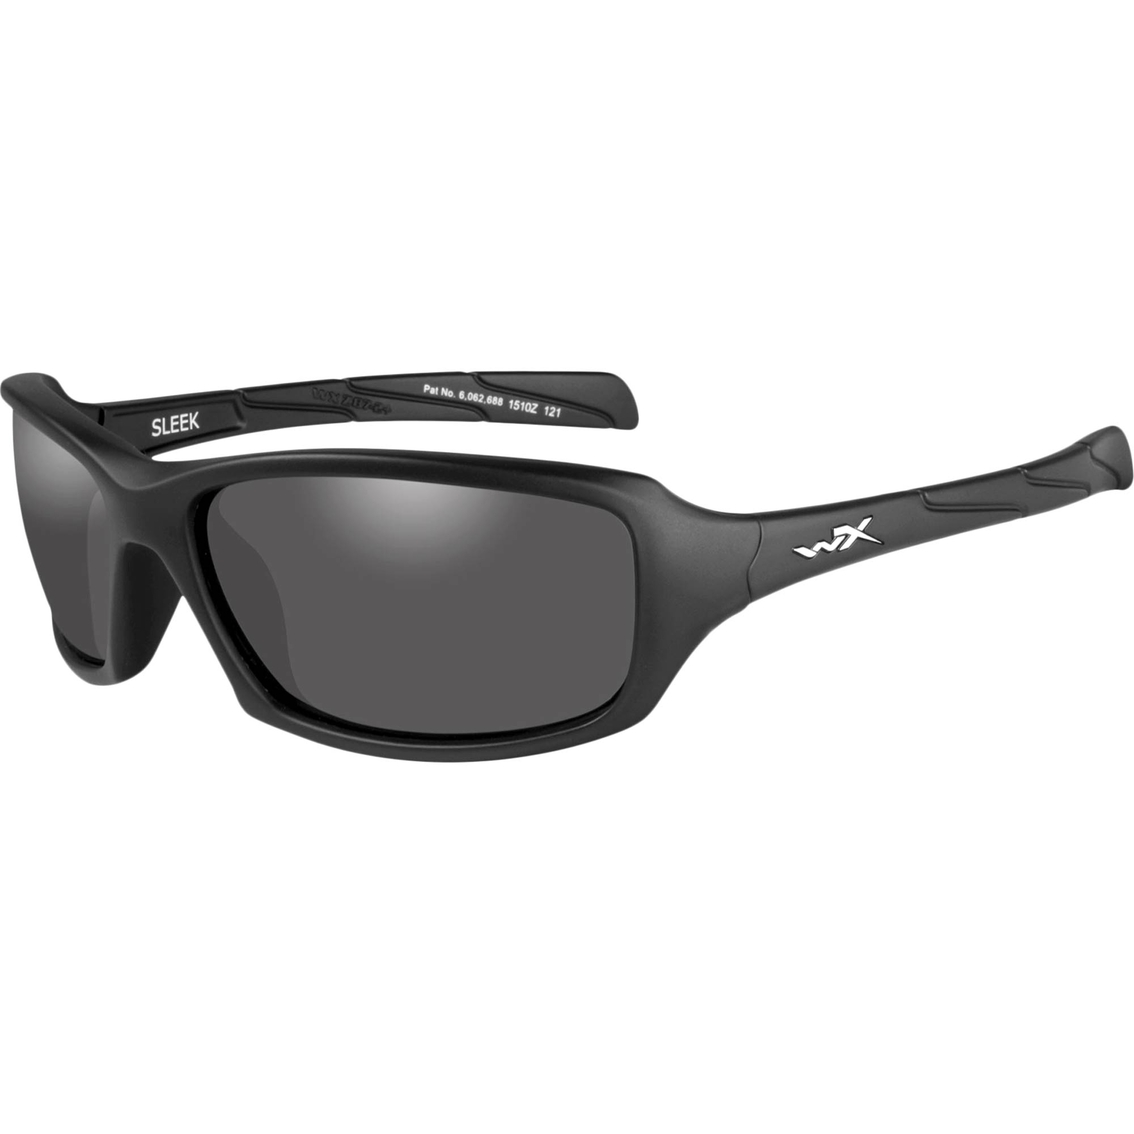 6d4759d48fd Wiley X Wx Triloid Nylon Square Sunglasses Ccsle